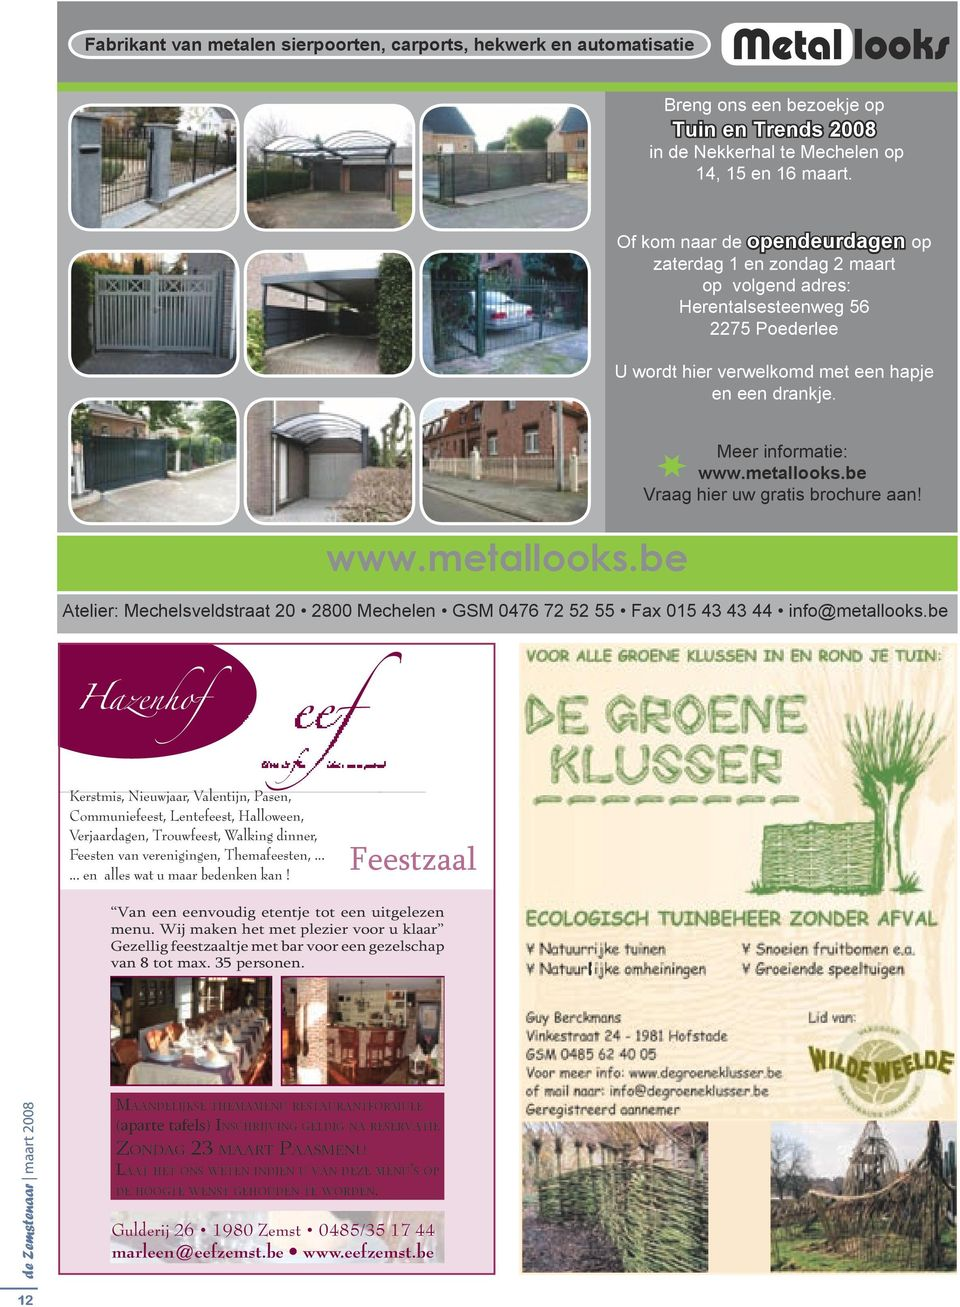 metallooks.be Vraag hier uw gratis brochure aan! www.metallooks.be Atelier: Mechelsveldstraat 20 2800 Mechelen GSM 0476 72 52 55 Fax 015 43 43 44 info@metallooks.